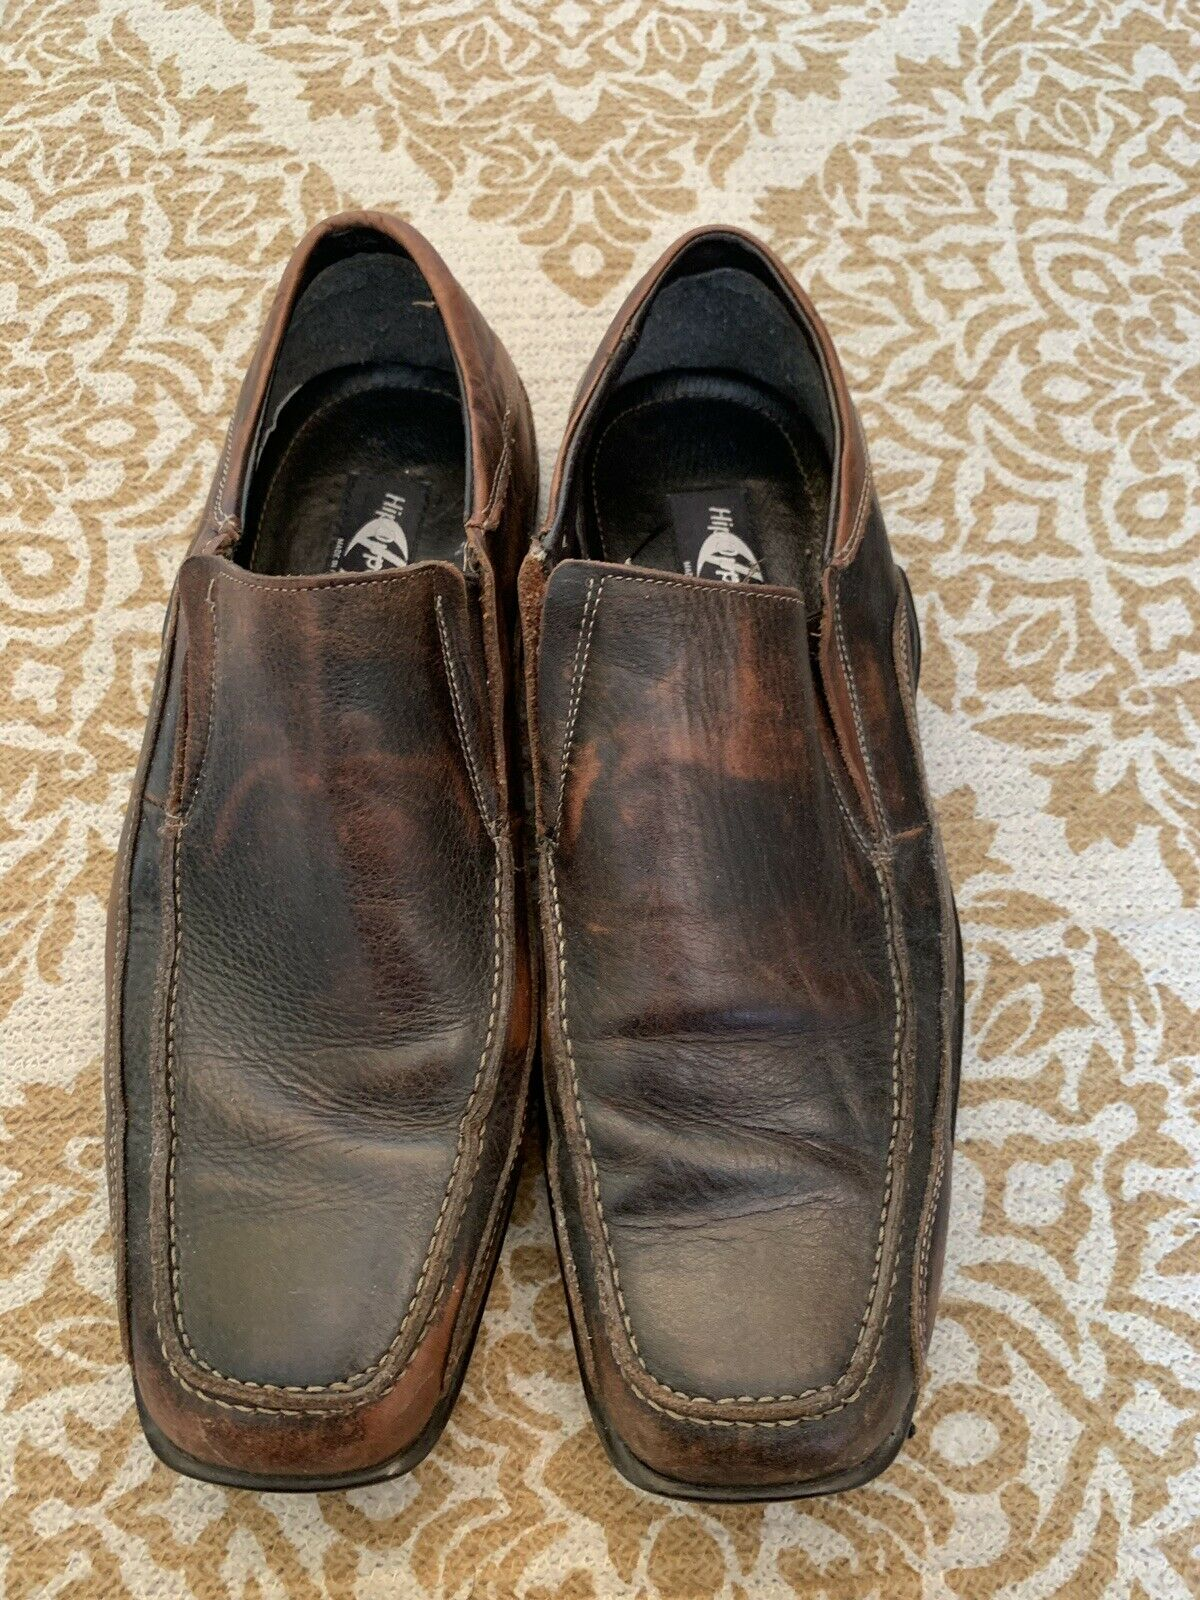 Hippopotamus Mens shoes 10 1 2 Brown Leather Upper&Lining Slip On Made in